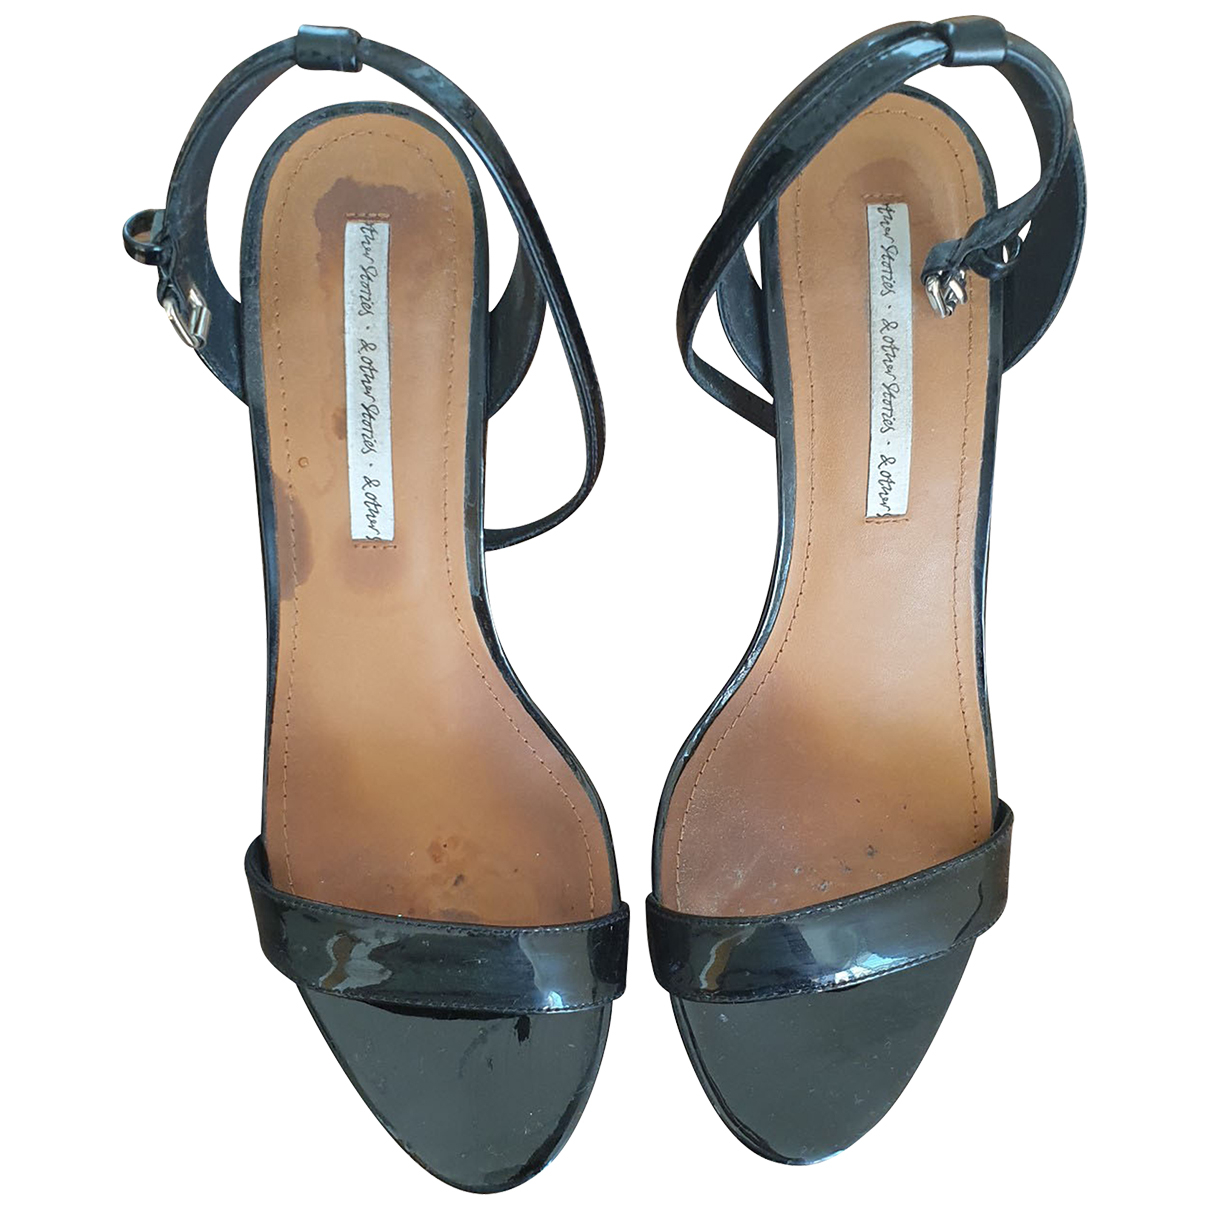 & Stories N Black Leather Sandals for Women 39 EU